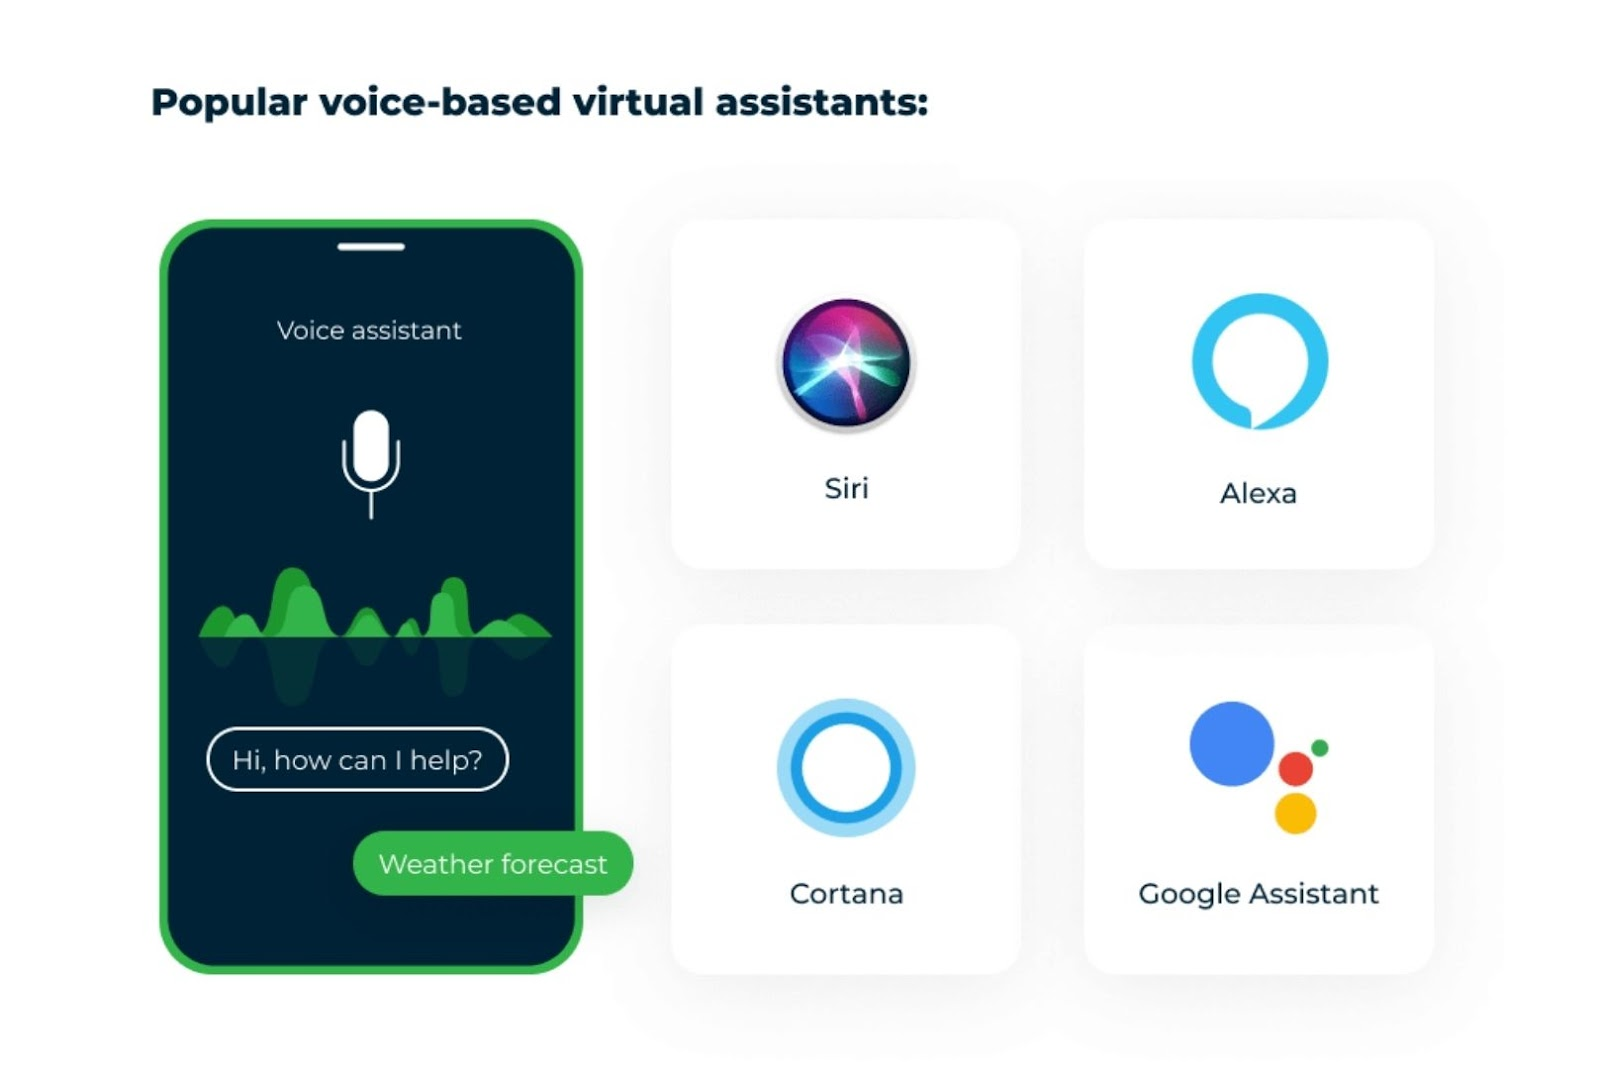 Voice based virtual assistants